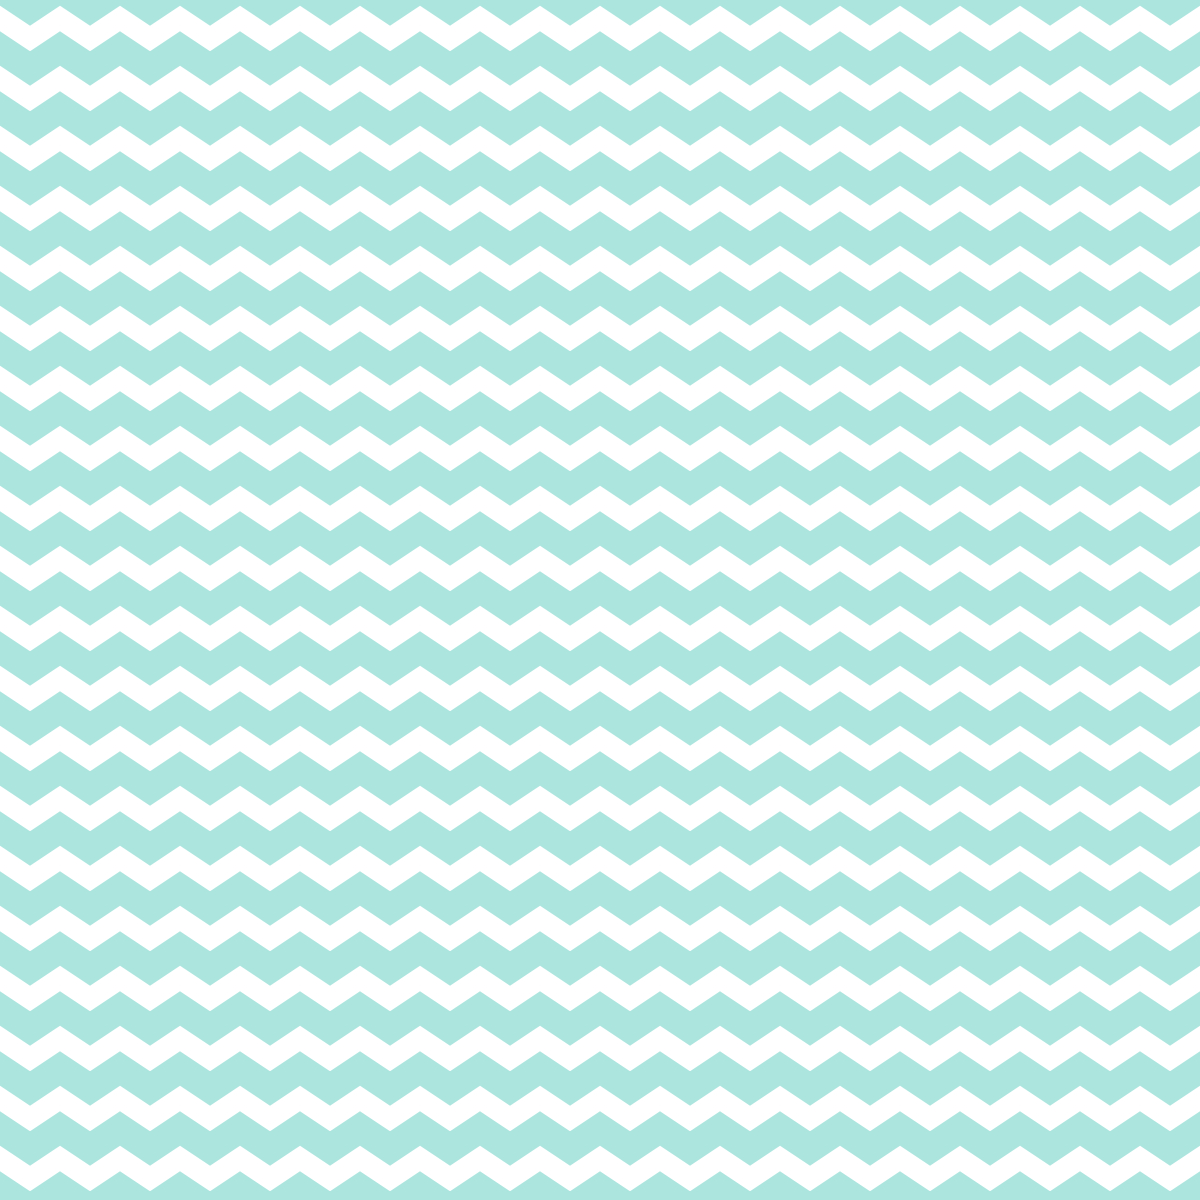 Free Digital Chevron Scrapbooking Papers - Ausdruckbares - Free Printable Scrapbook Paper Designs